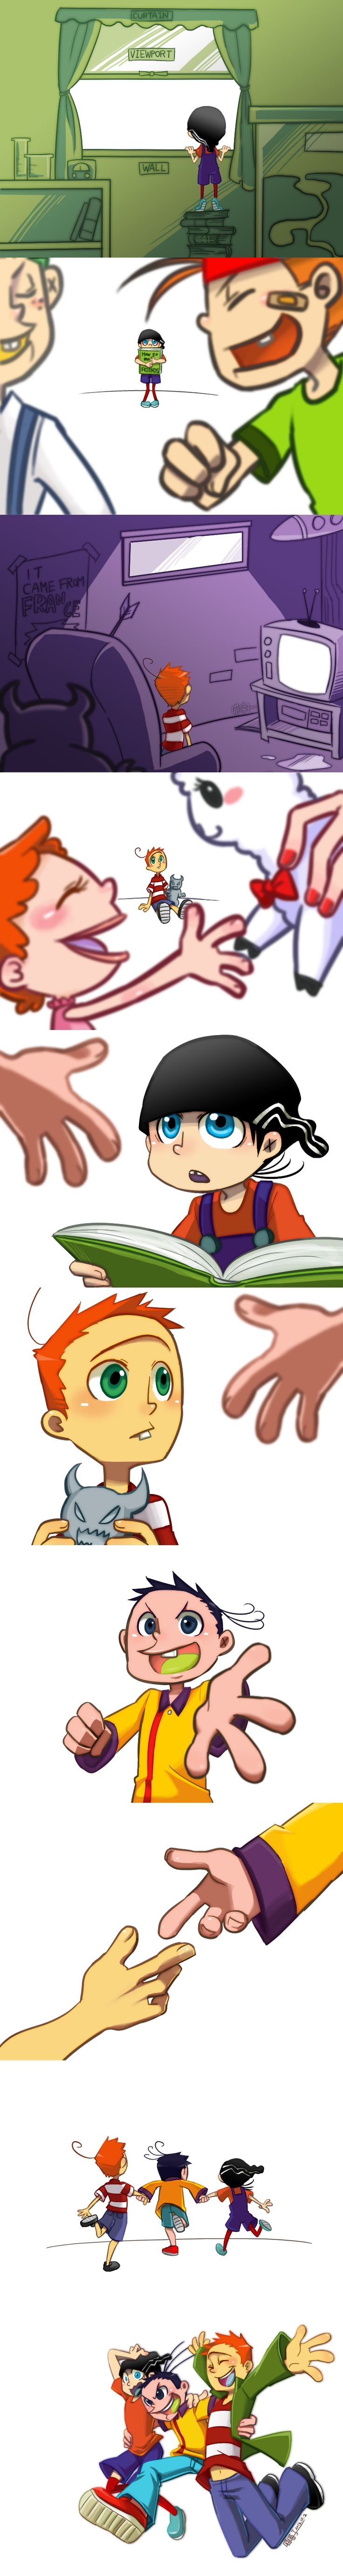 Ed Edd and Eddy_Best friends forever by aulauly7.deviantart.com on @deviantART